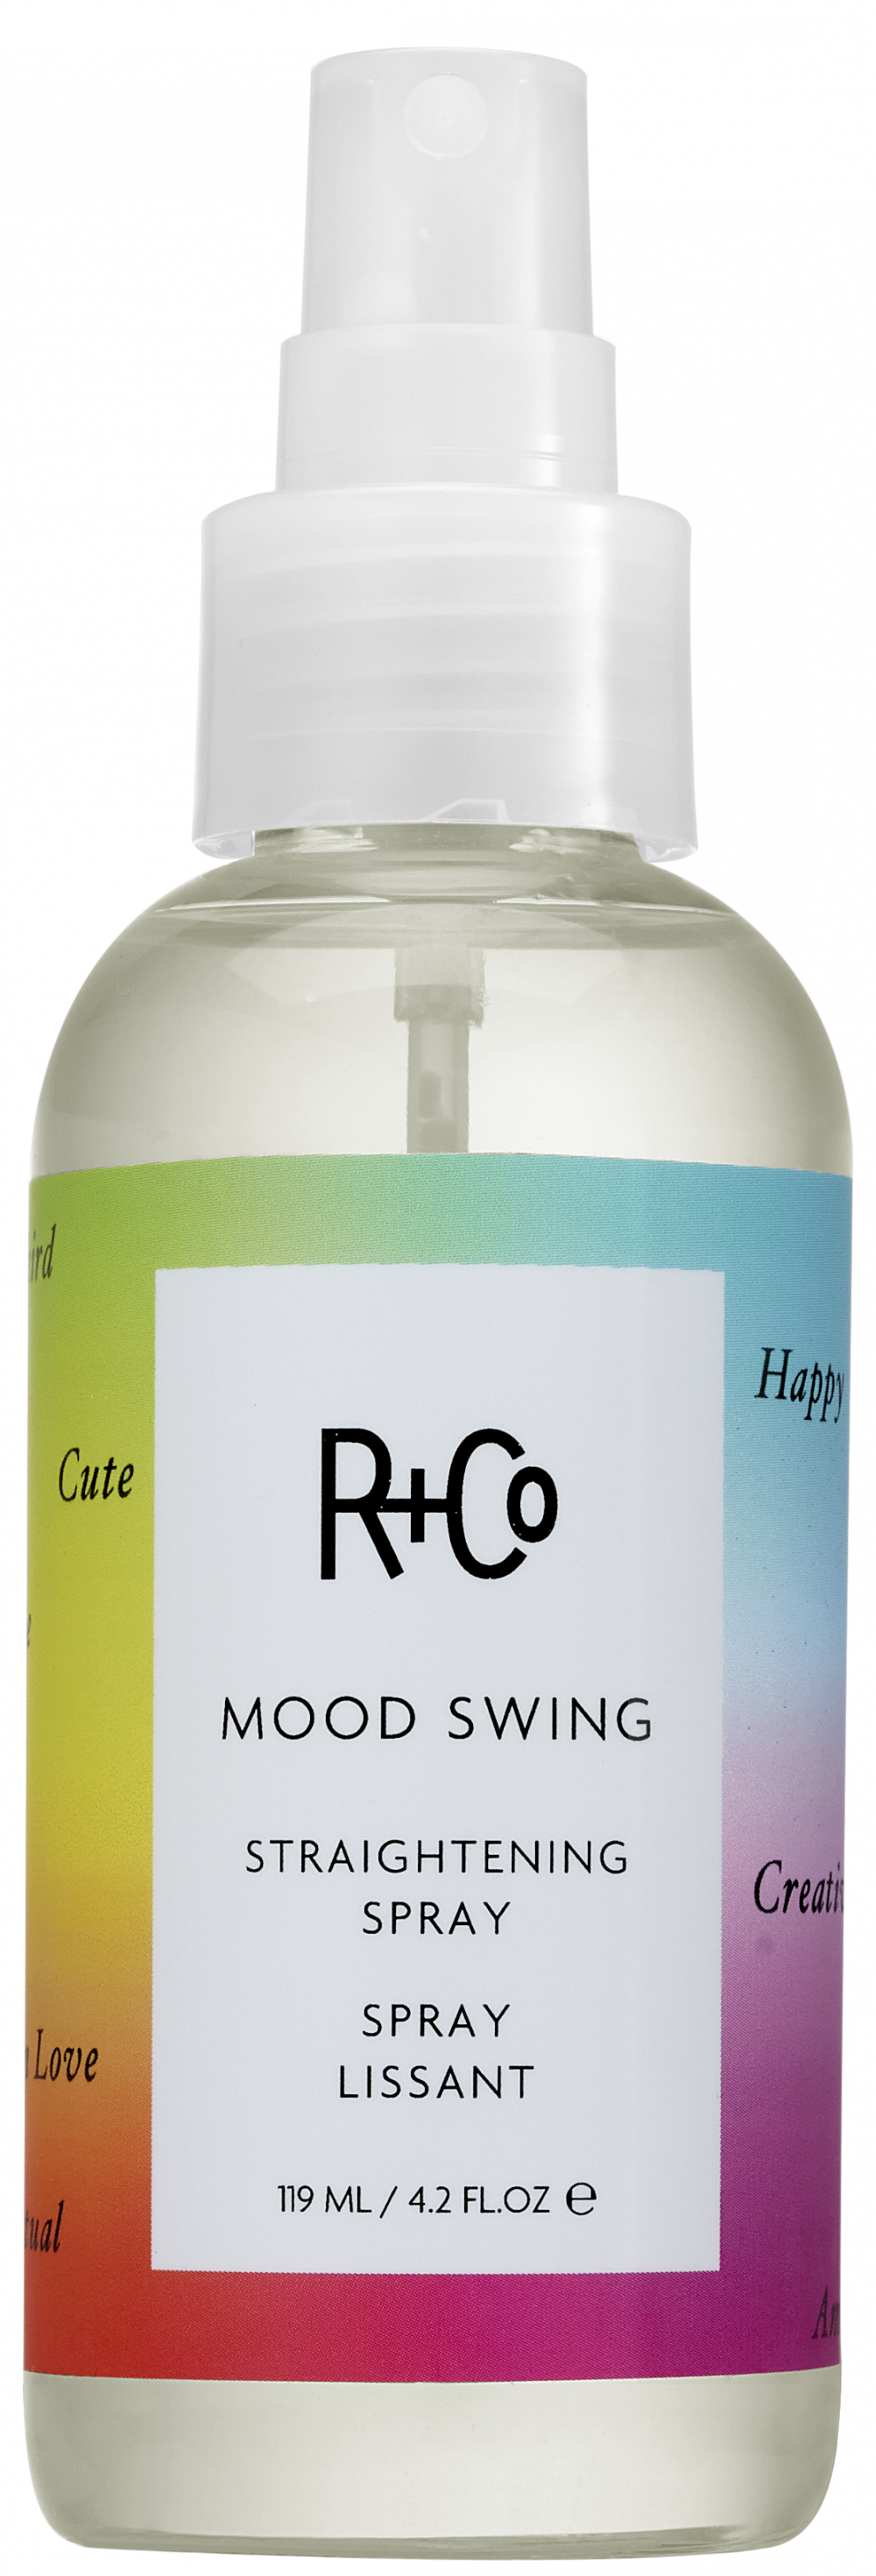 r-co-mood-swing-straightening-spray.png